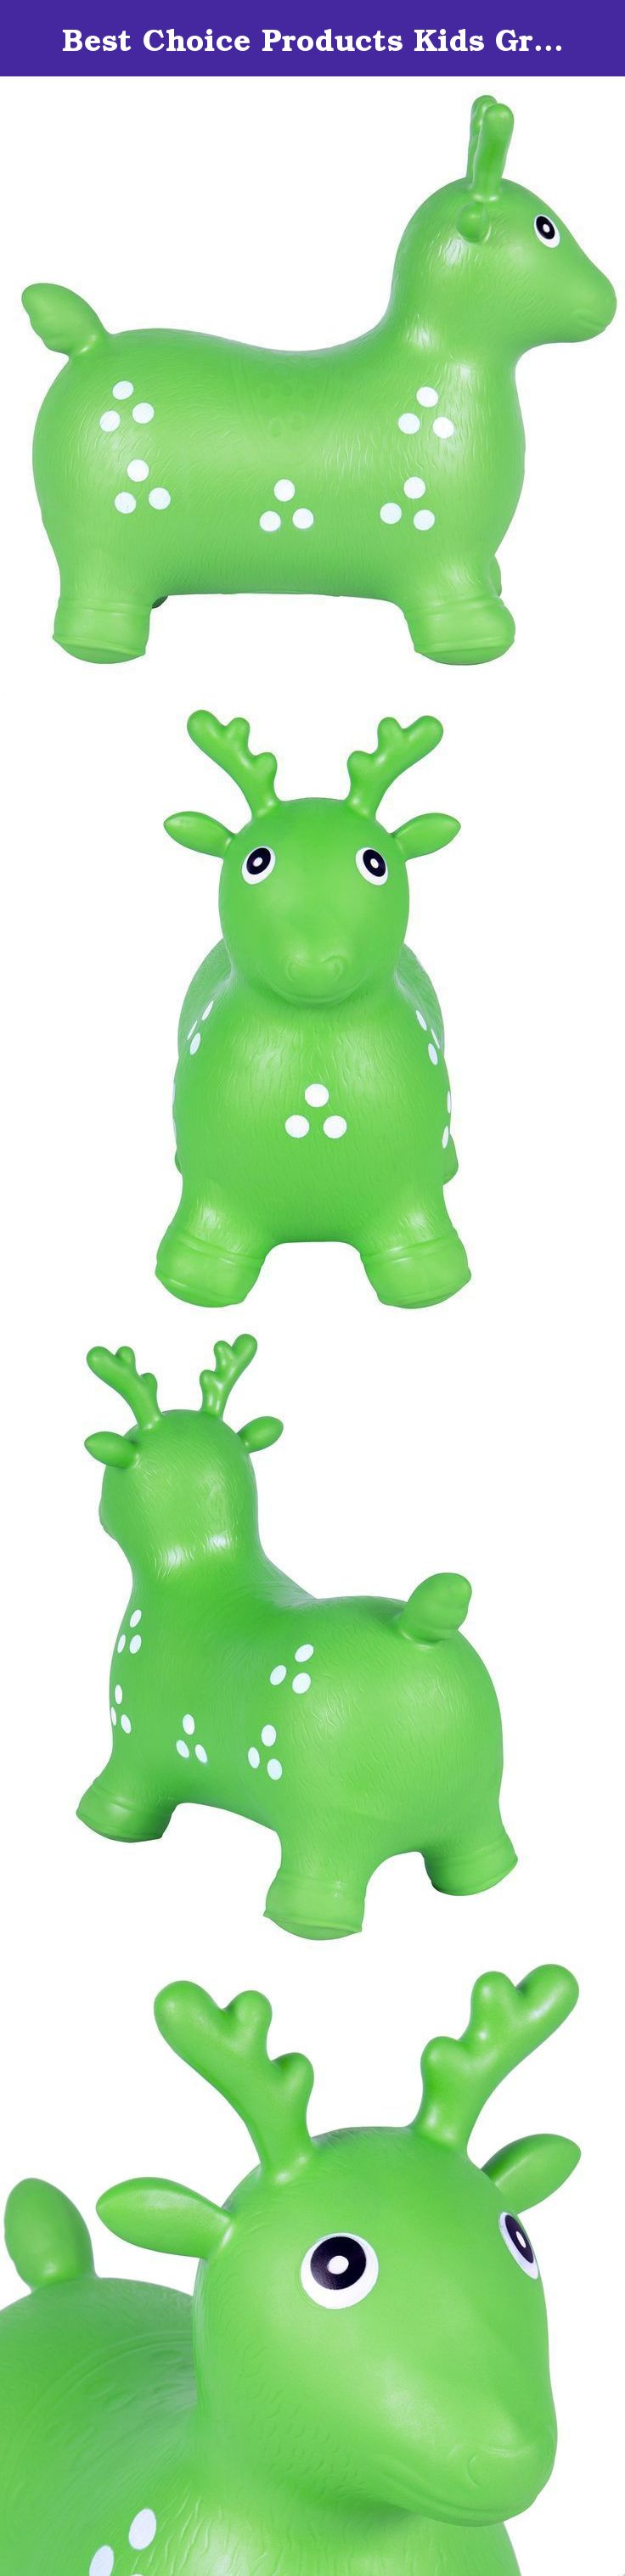 Best Choice Products Kids Green Deer Hopper, Inflatable Jumping Deer Ride-on Bouncy Pump Included. Best Choice Products is proud to present this brand new green jumping Deer. This toy is made out of durable comfortable material that can support you child weight and allow them to have fun by jumping up and down on this toy. This little pet can easily become your child's best friend because it is light to carry and can be used inside and outside. With its cute face and adorable decoration…